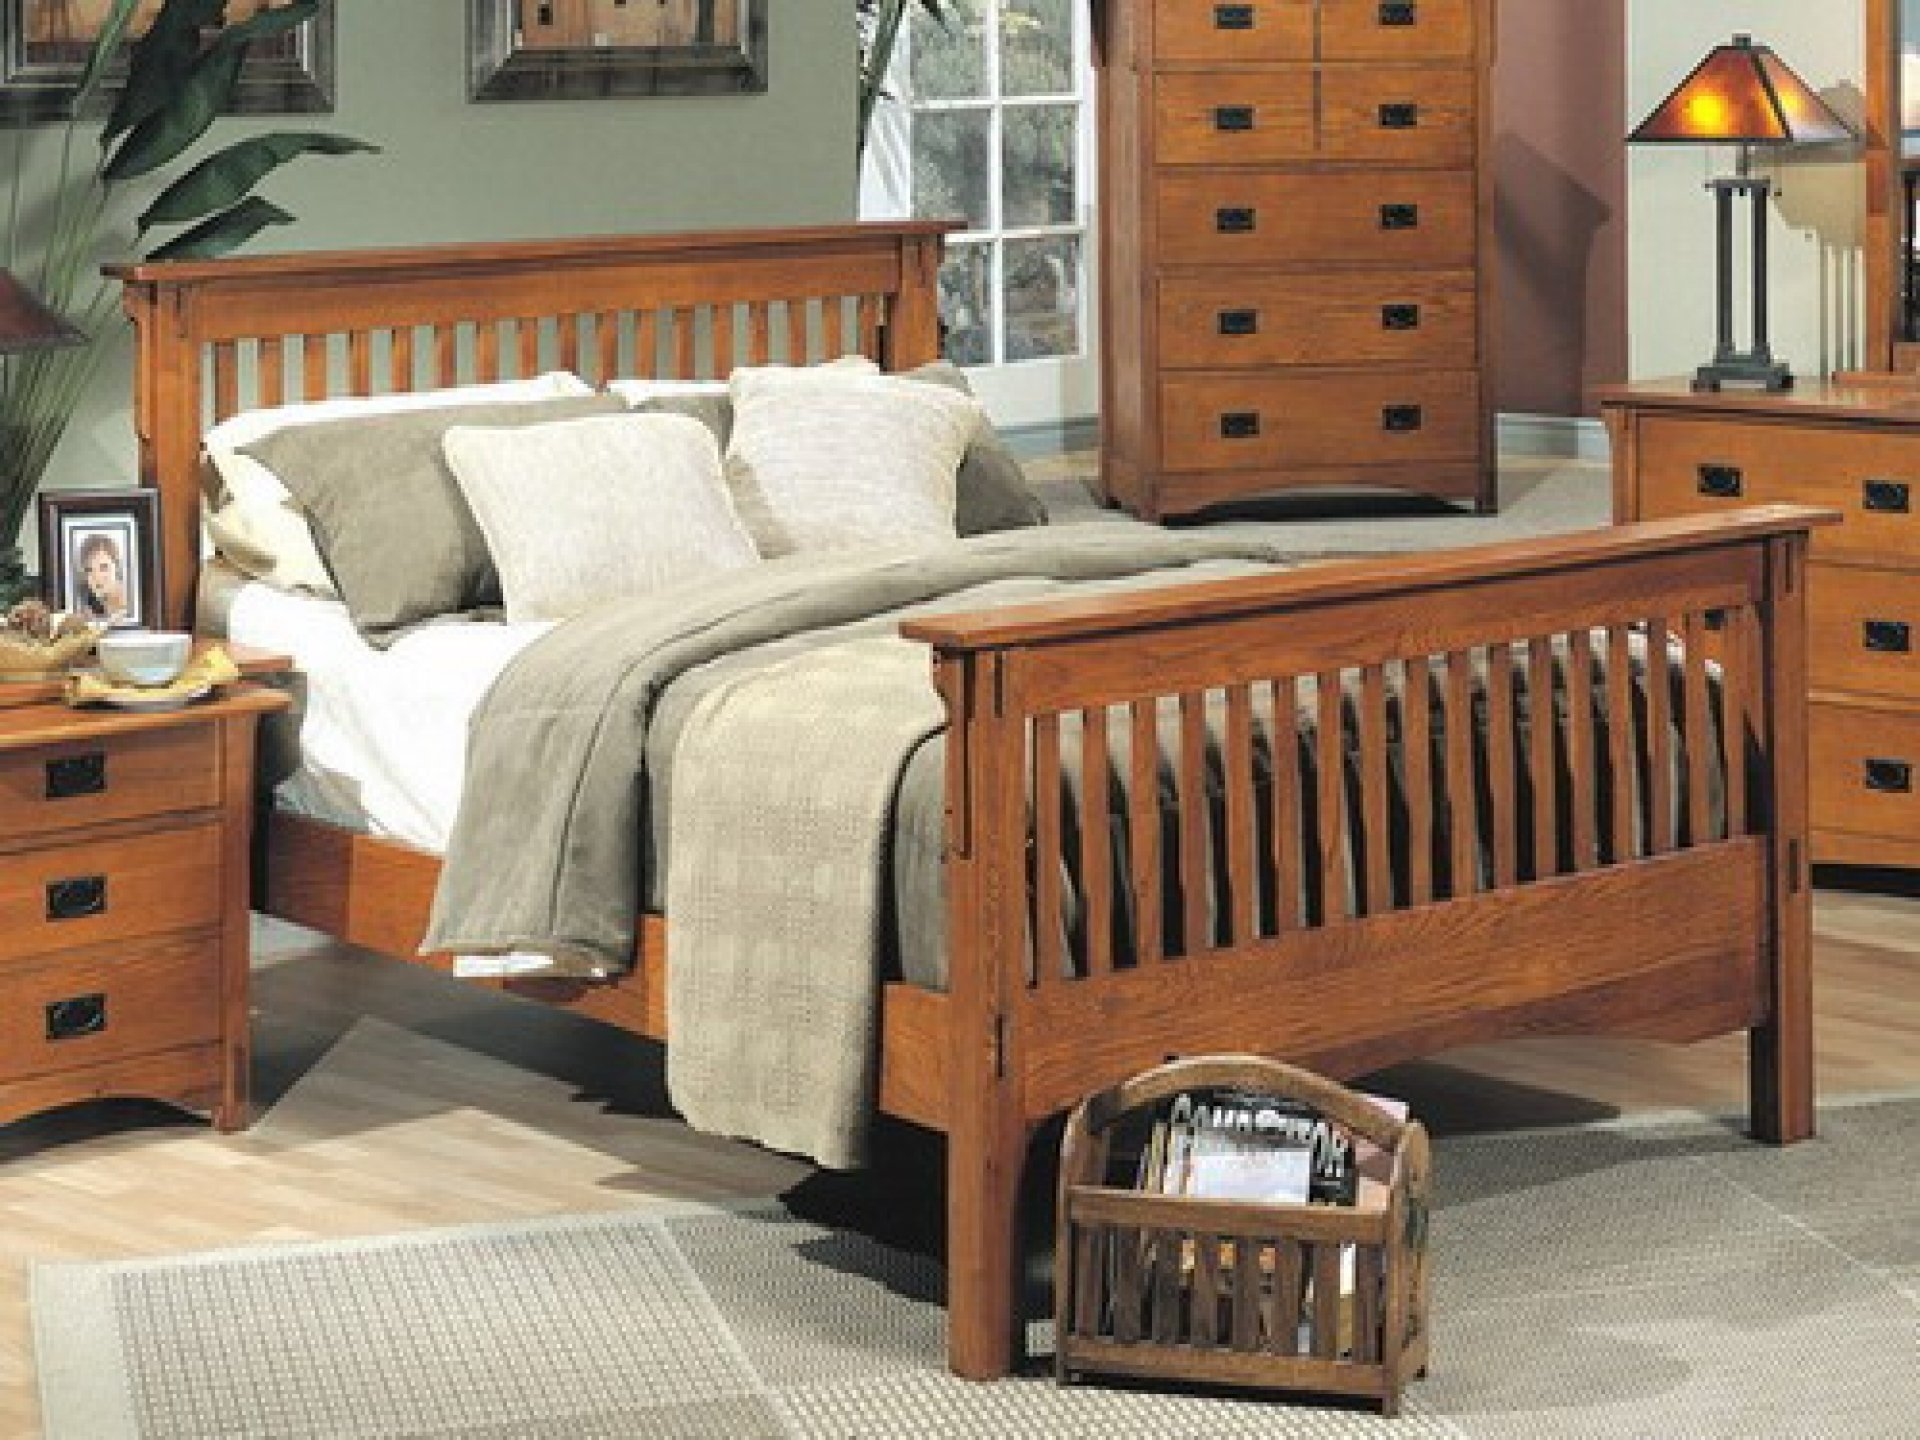 Wooden bed frame ideas - Cheap Wooden Bed Frame